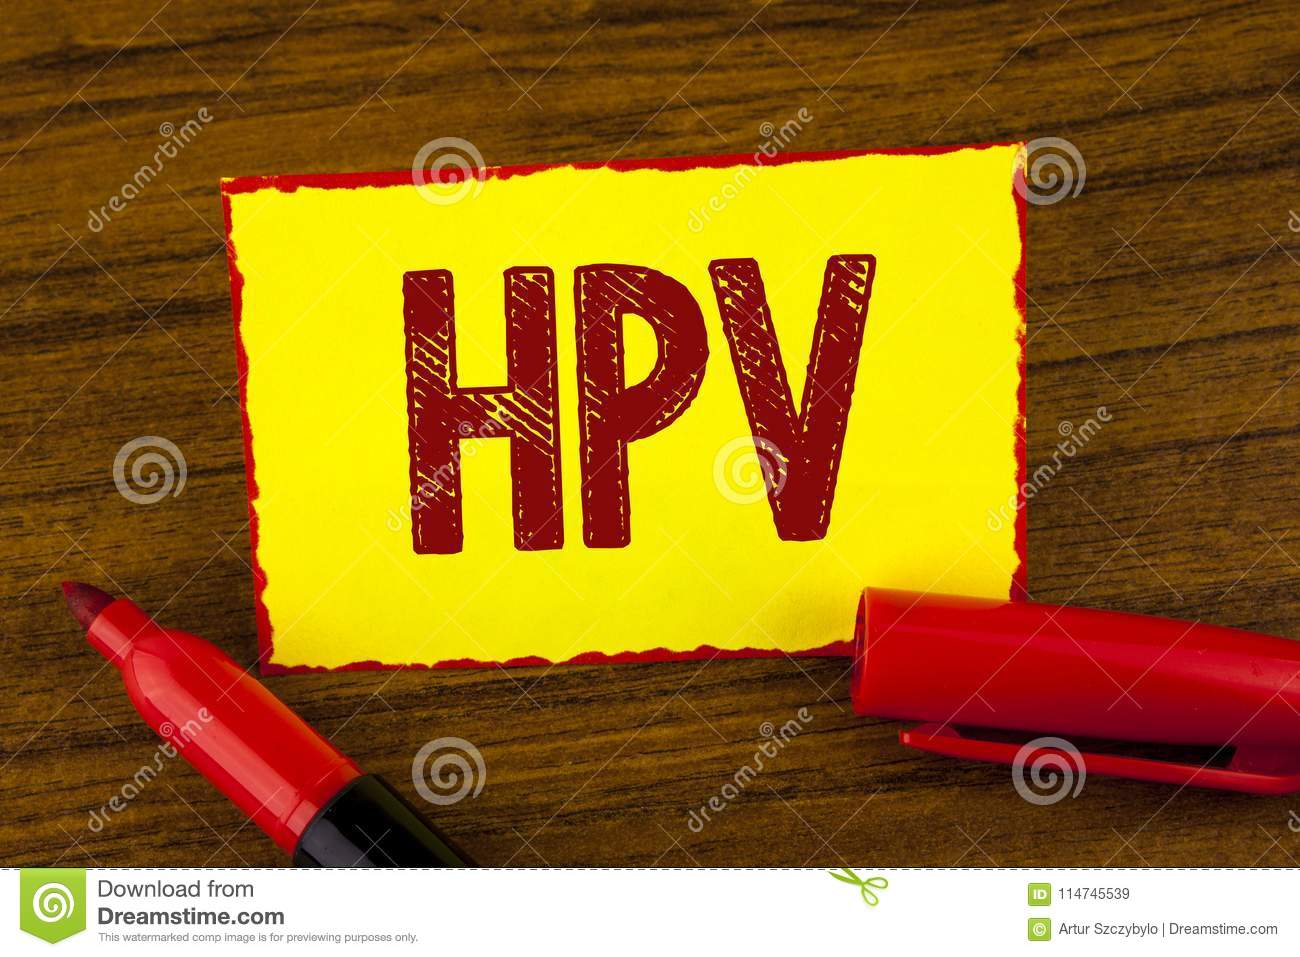 Is hpv only a sexually transmitted disease